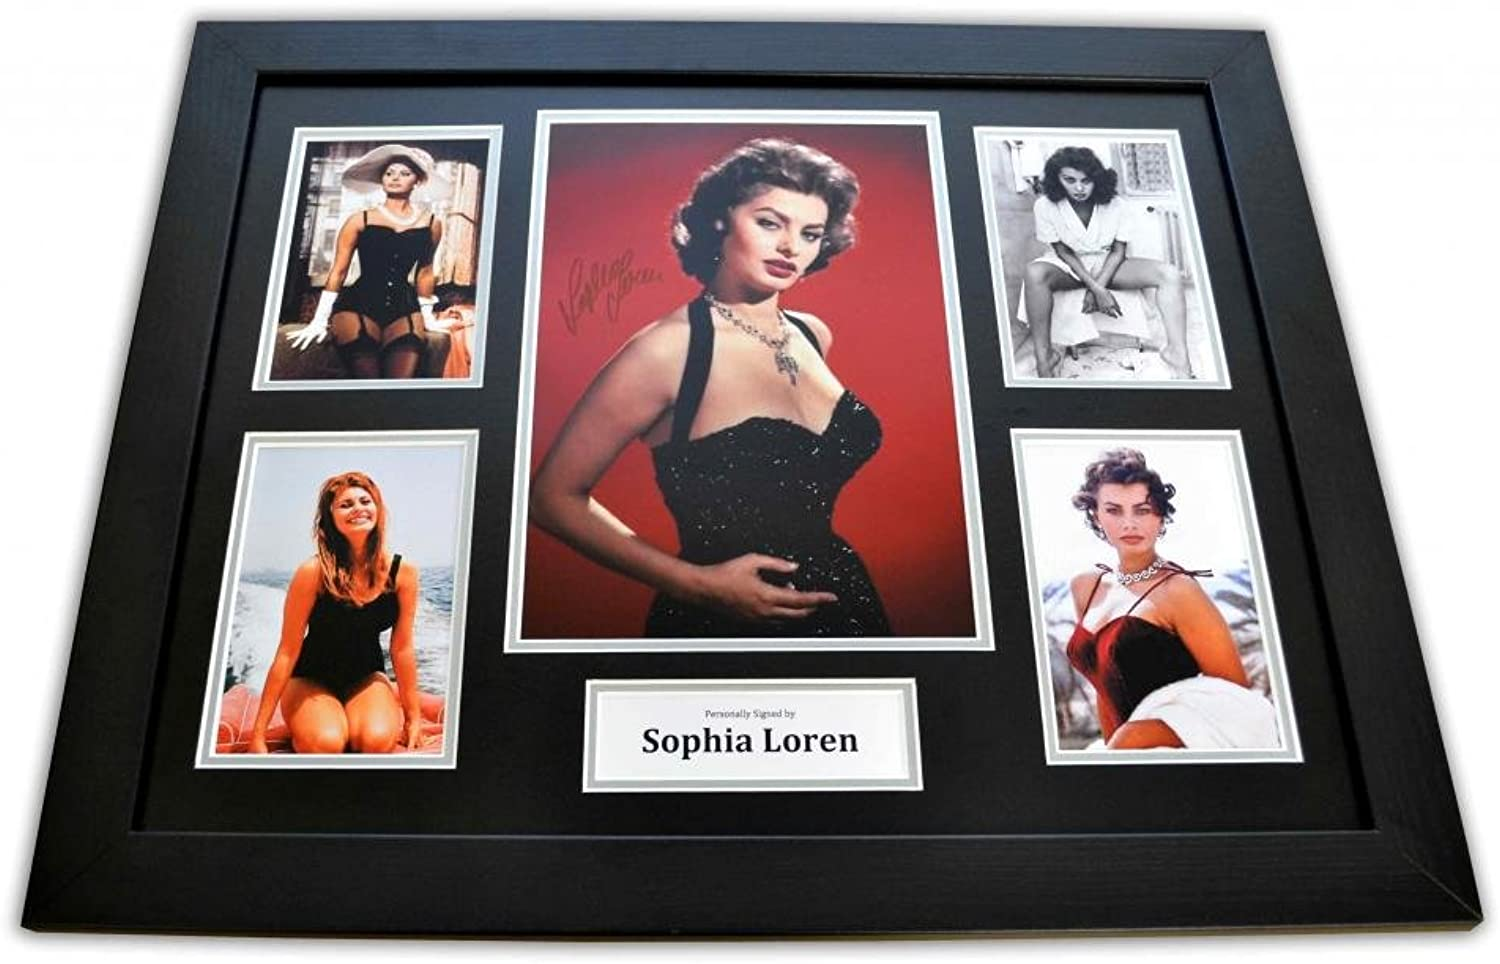 Sophia Loren Signed Photo Large Framed Houseboat Autograph Display Memorabilia